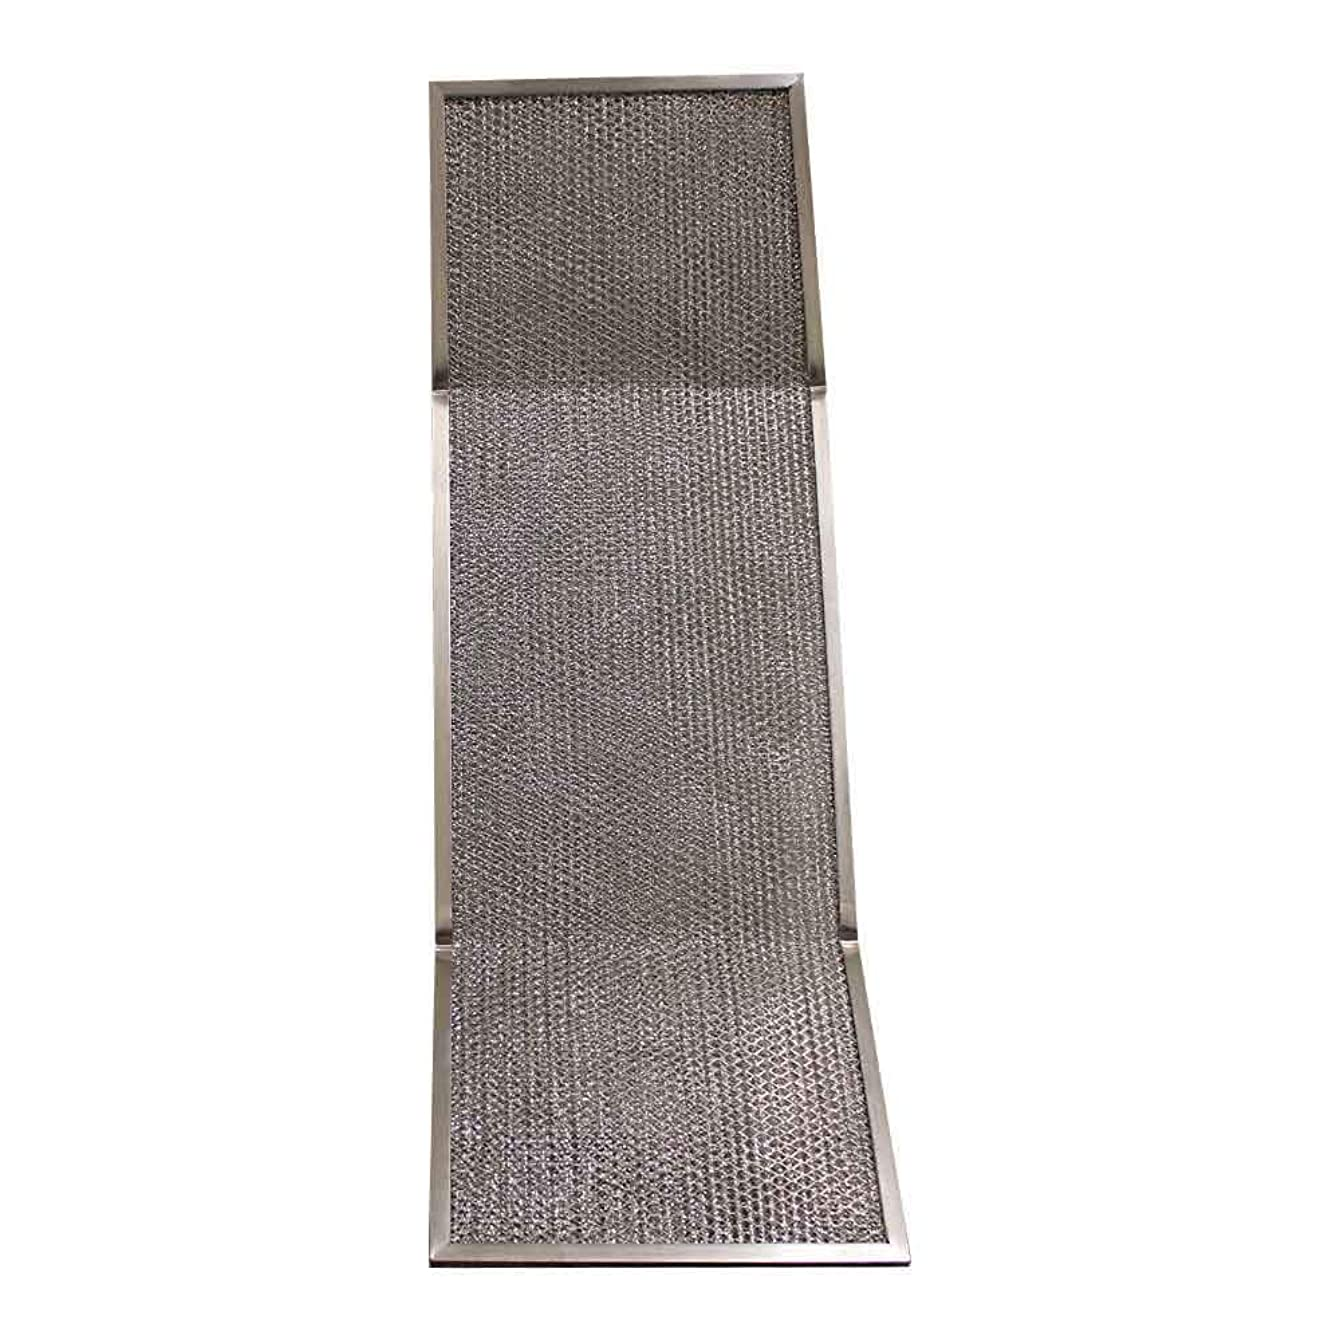 Thermador 19-19-266 Range Hood Filter Replacement